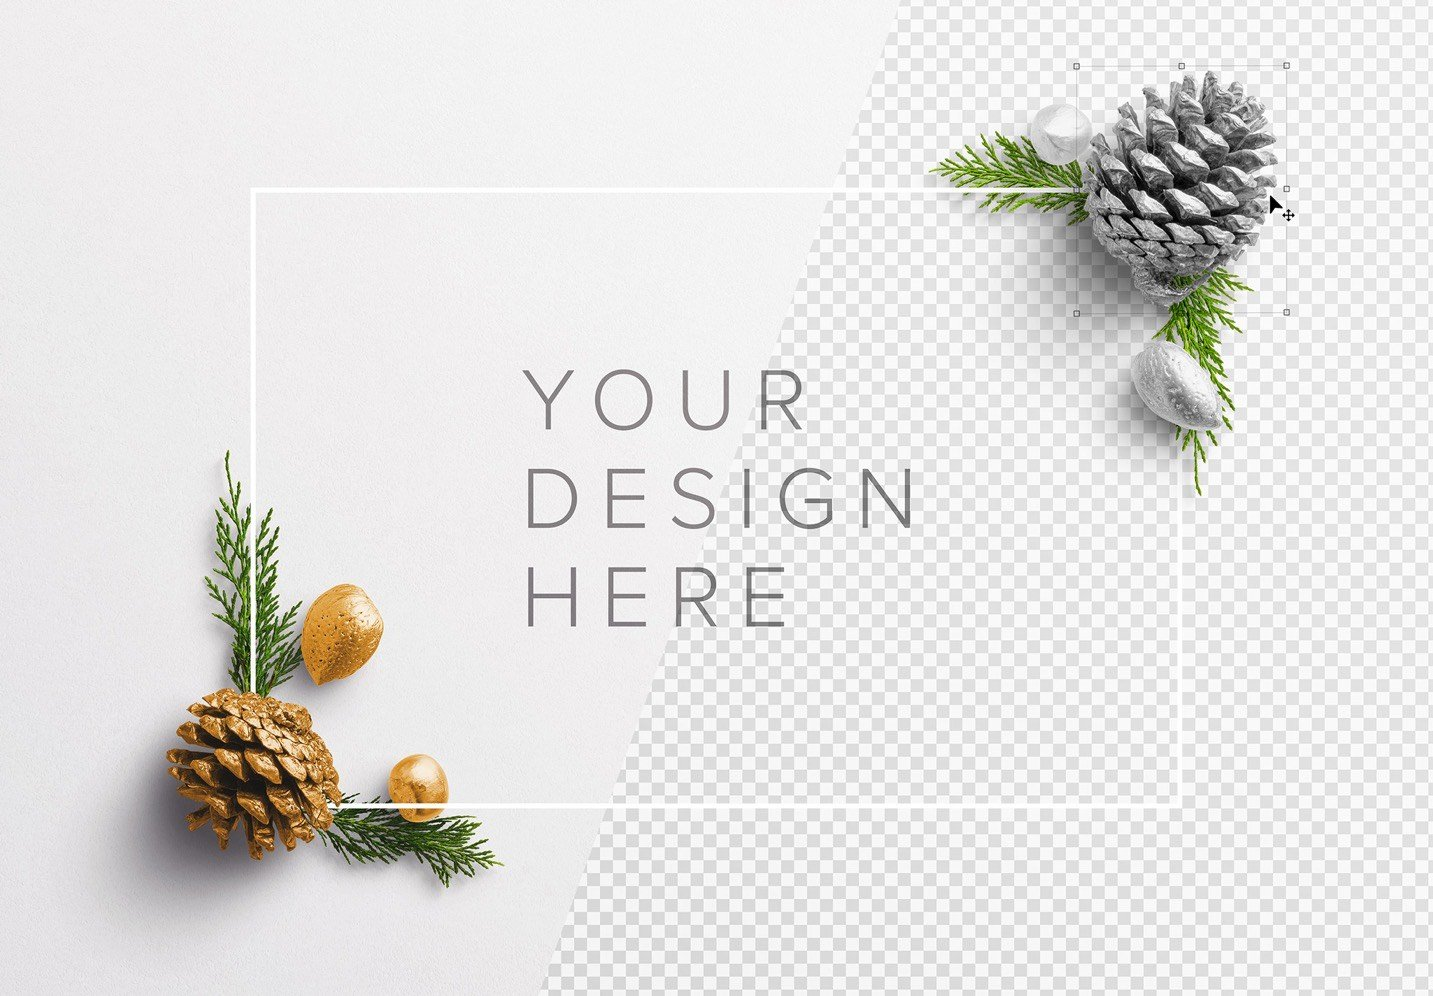 winter frame nature mockup 2 image01